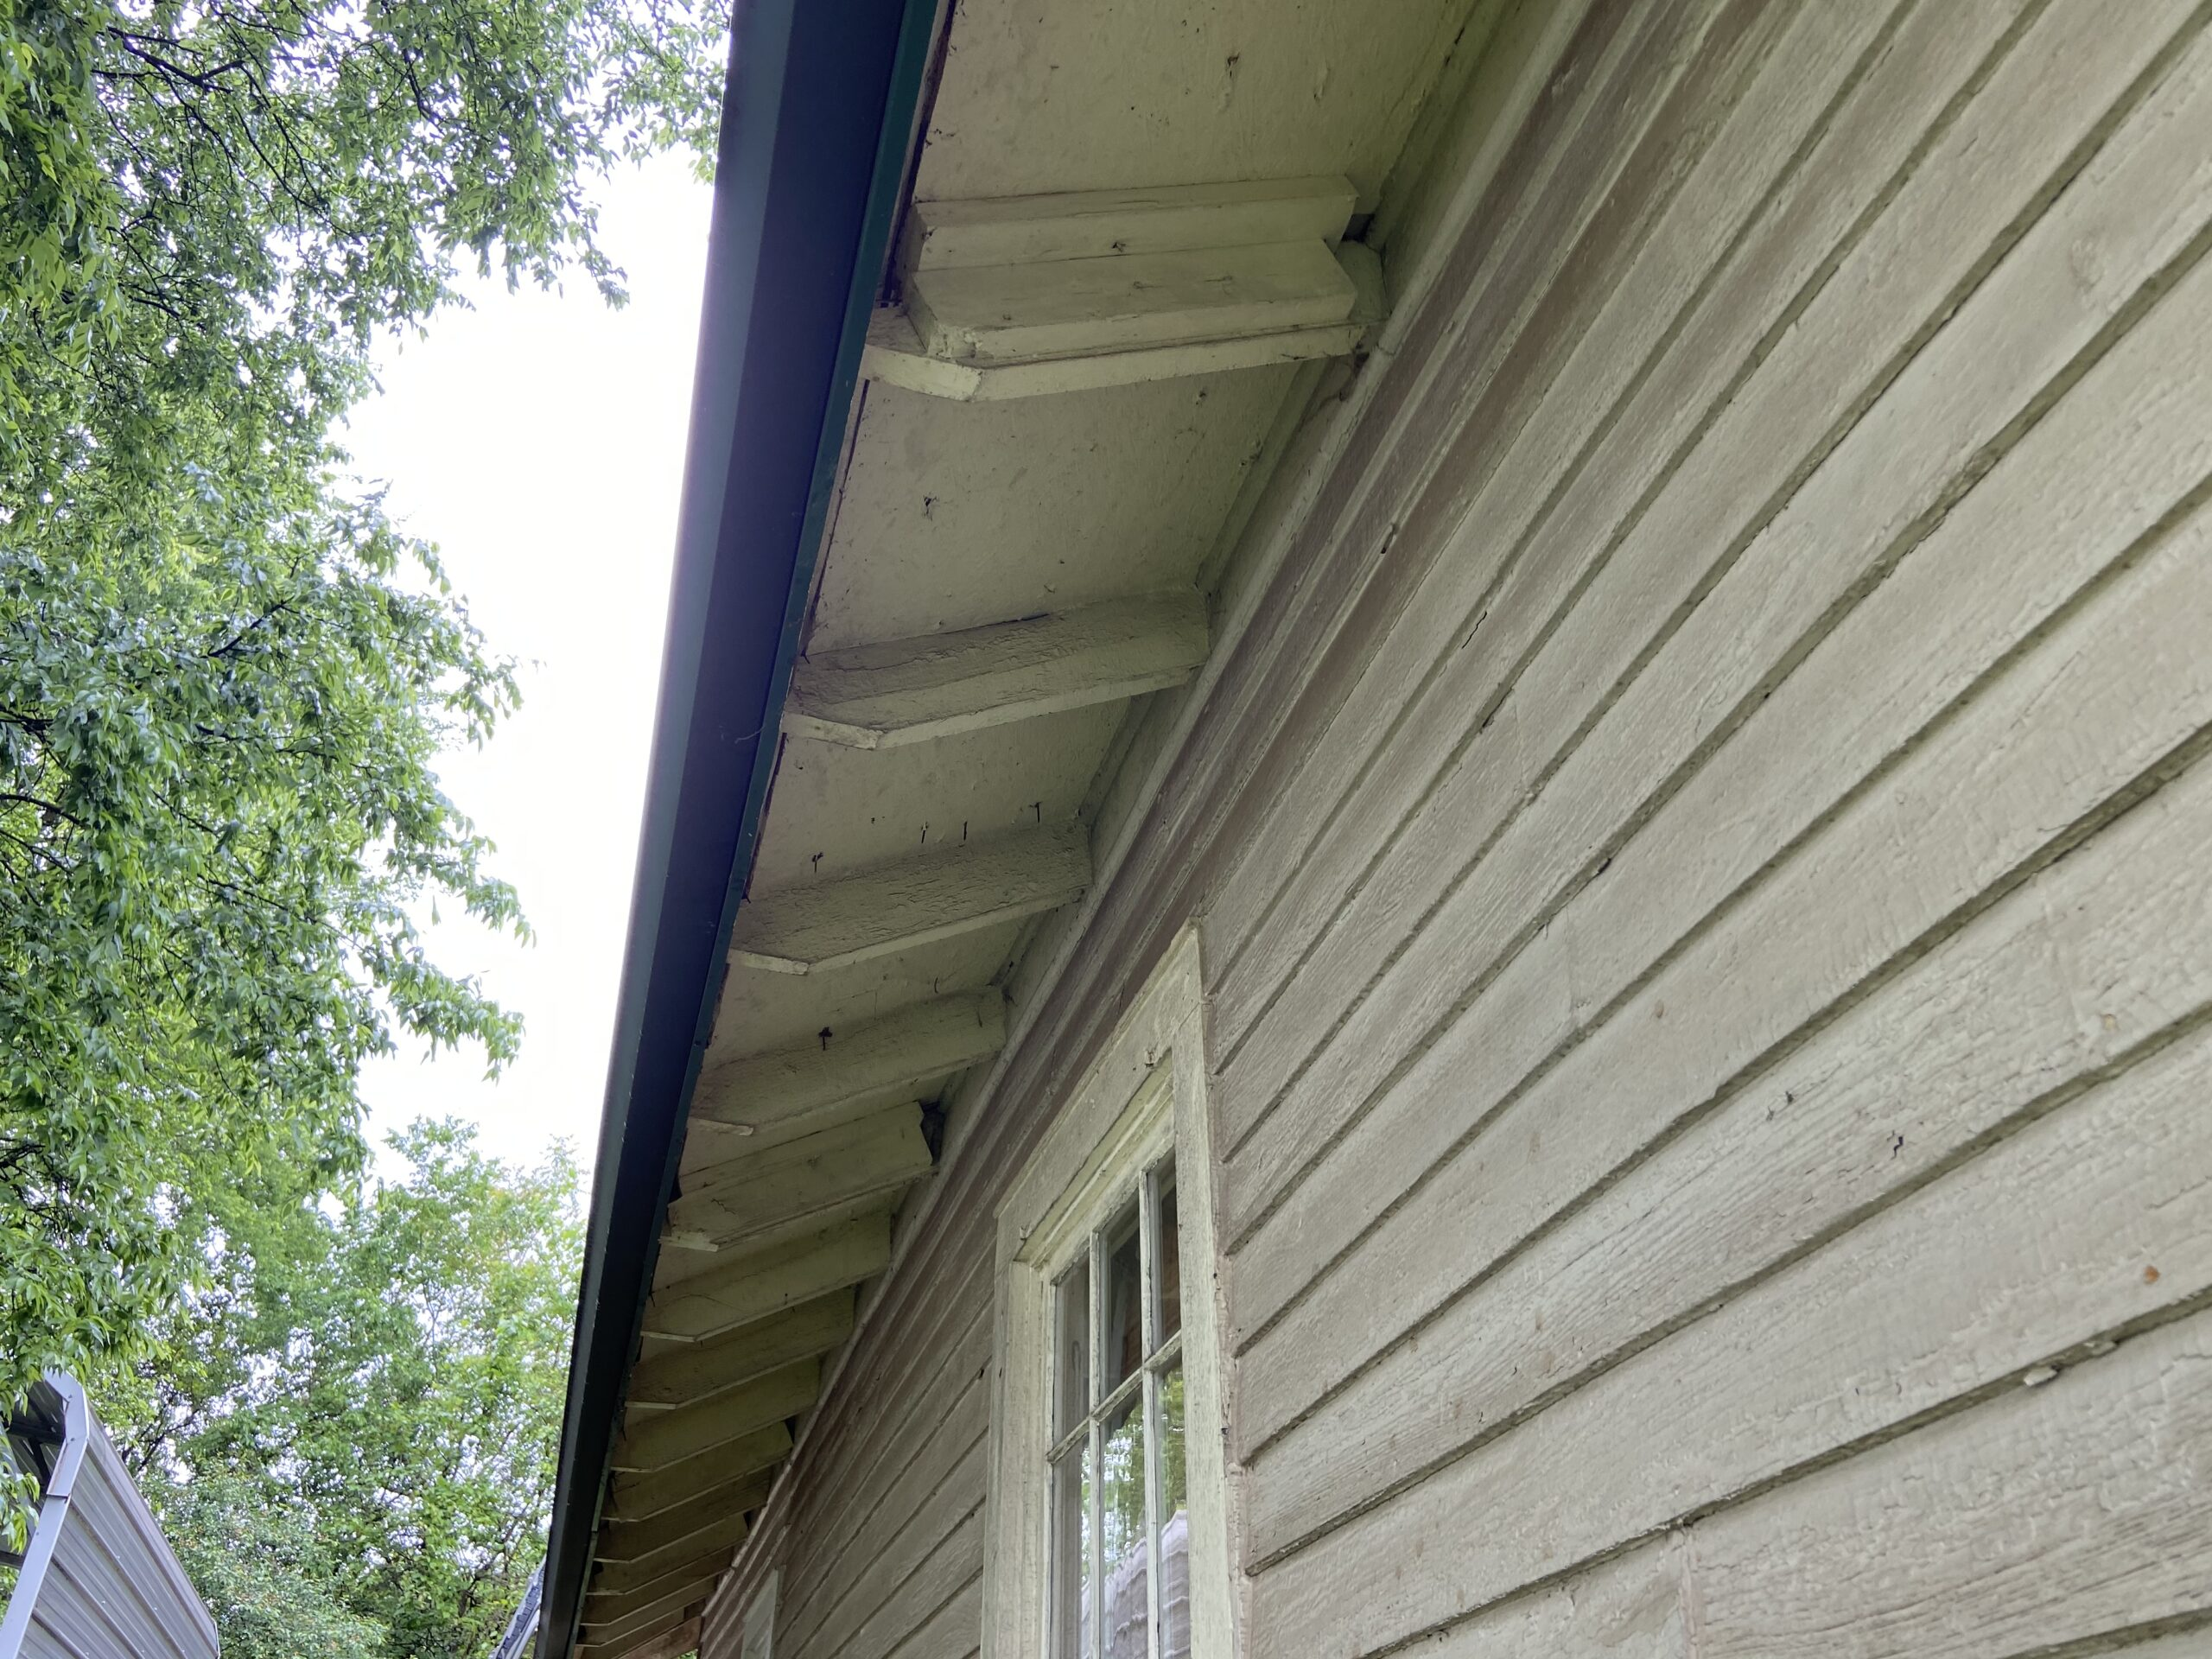 Plywood soffit at roof esge